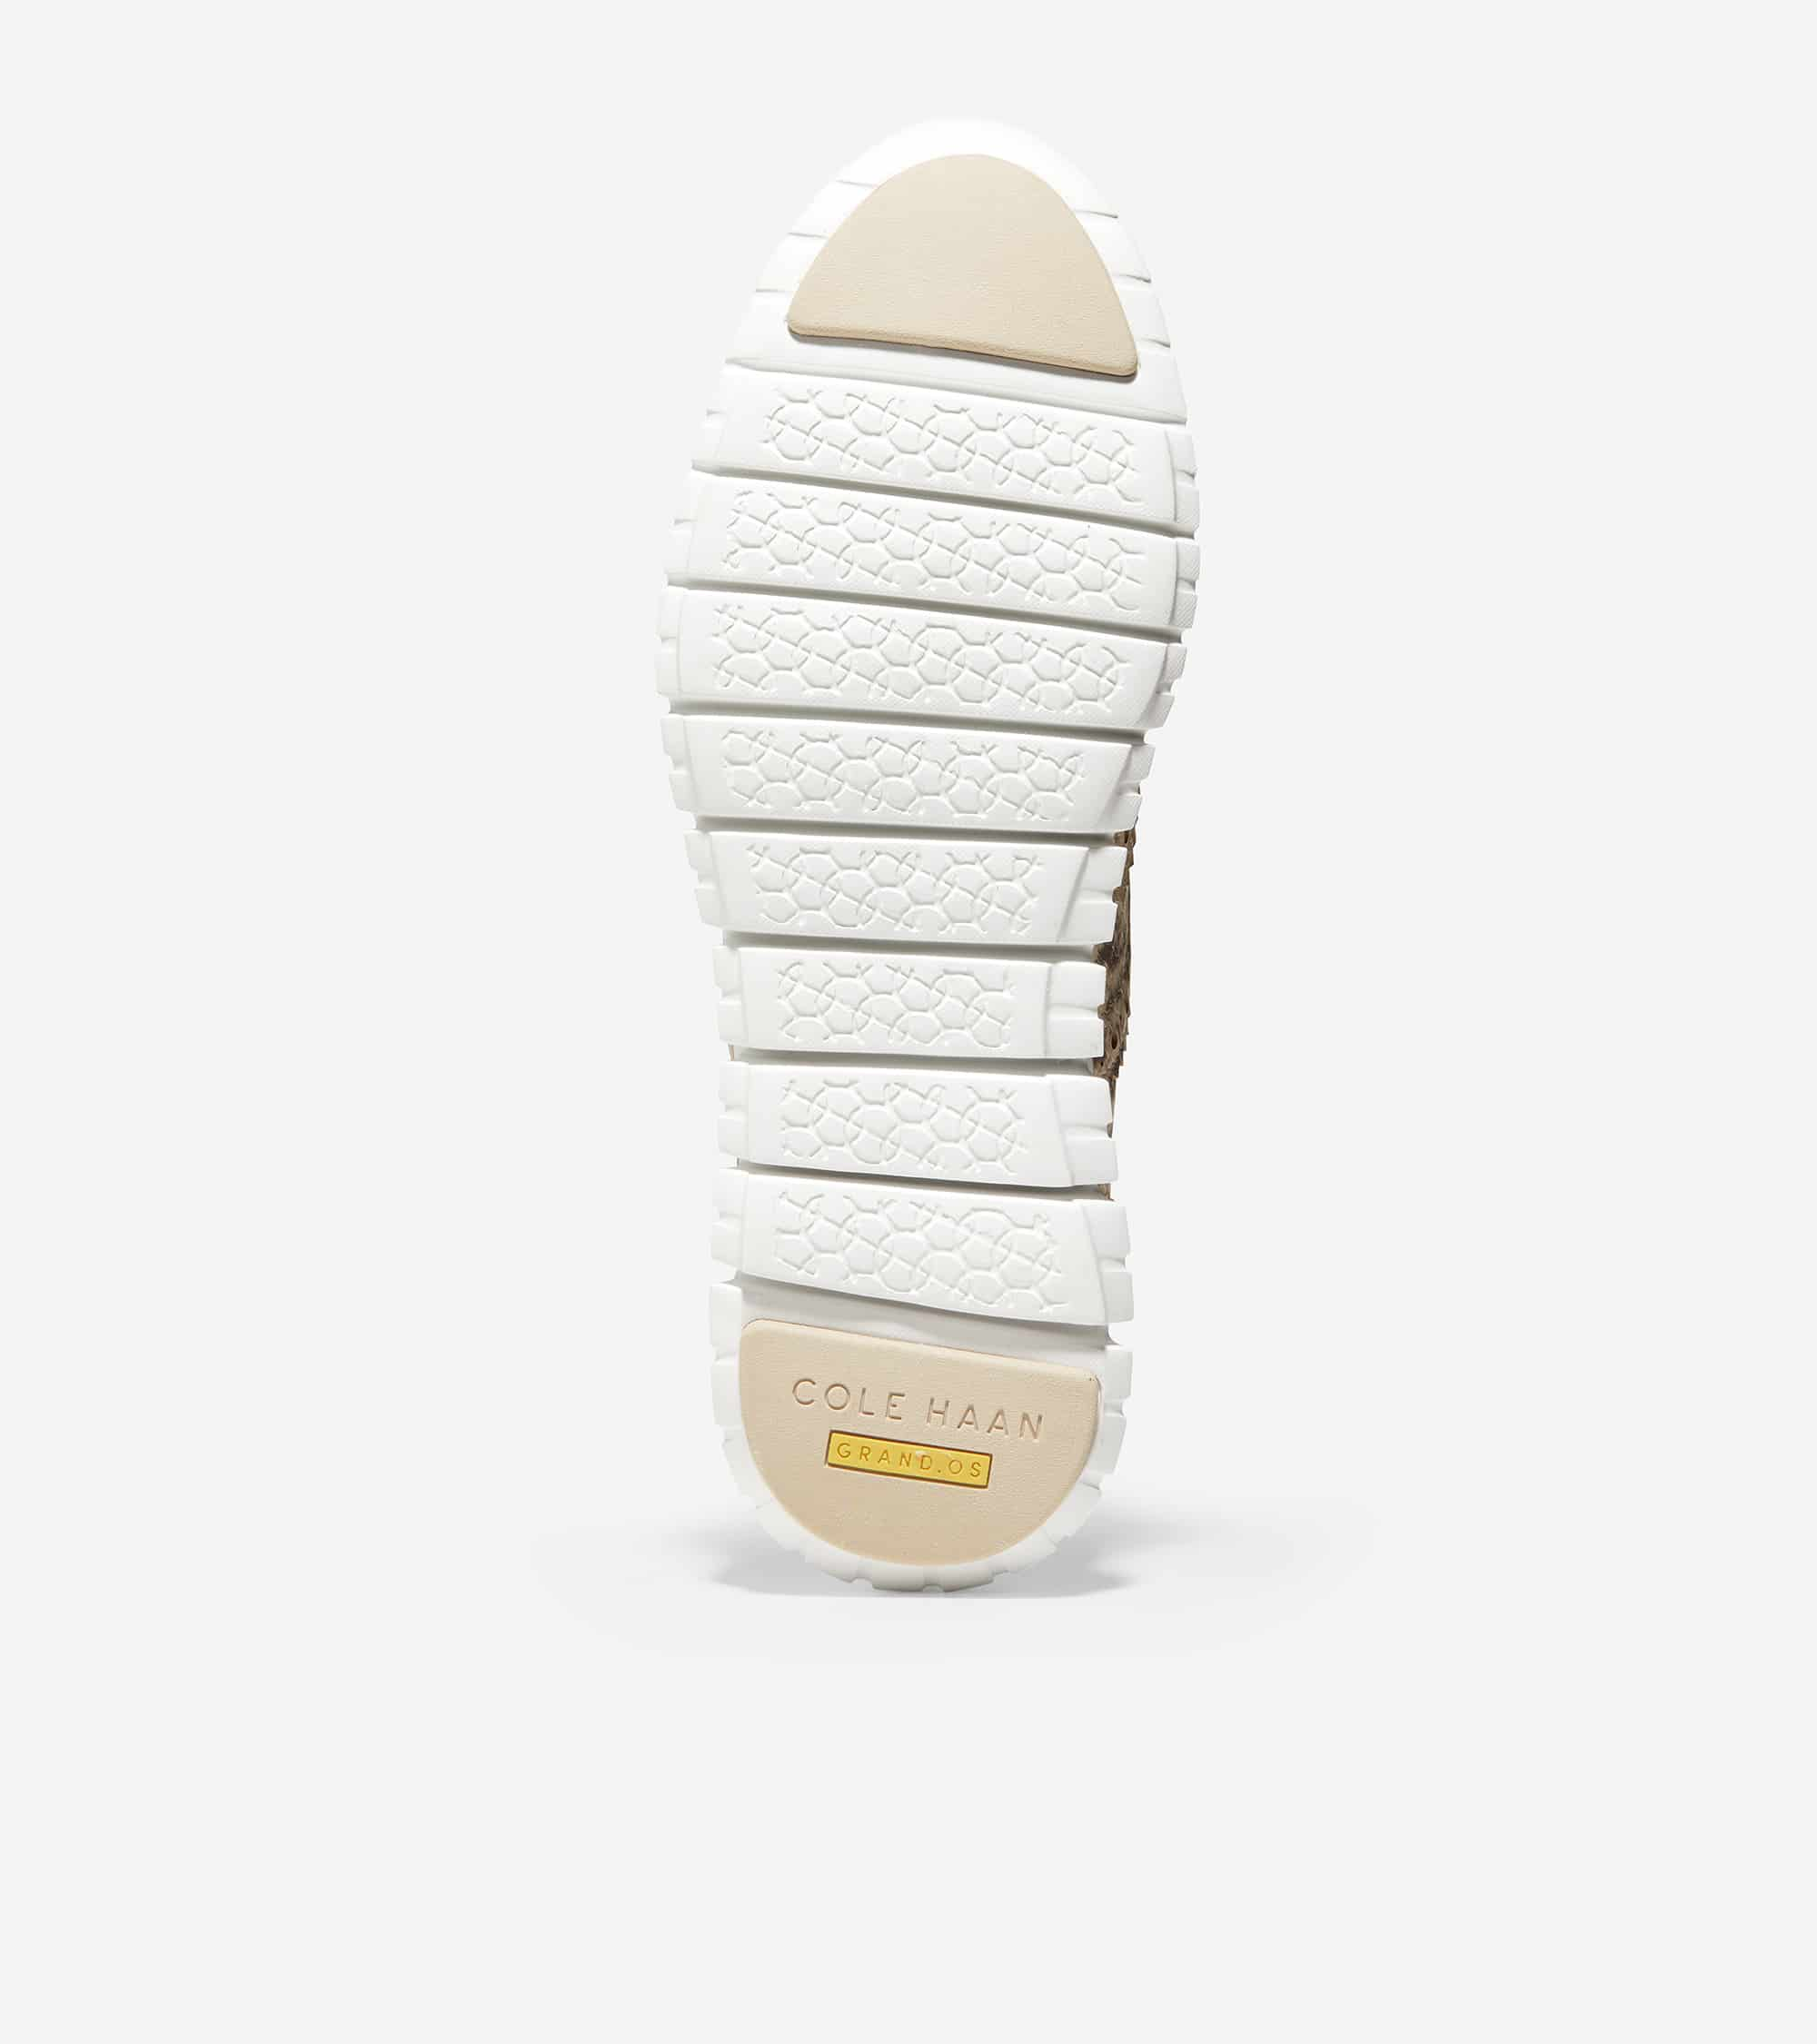 Cole Haan ZERØGRAND Wing Ox Closed Hole Ii Python Printed Leather / Cement Leather / Optic White Midsole / Cement Rubber Pods